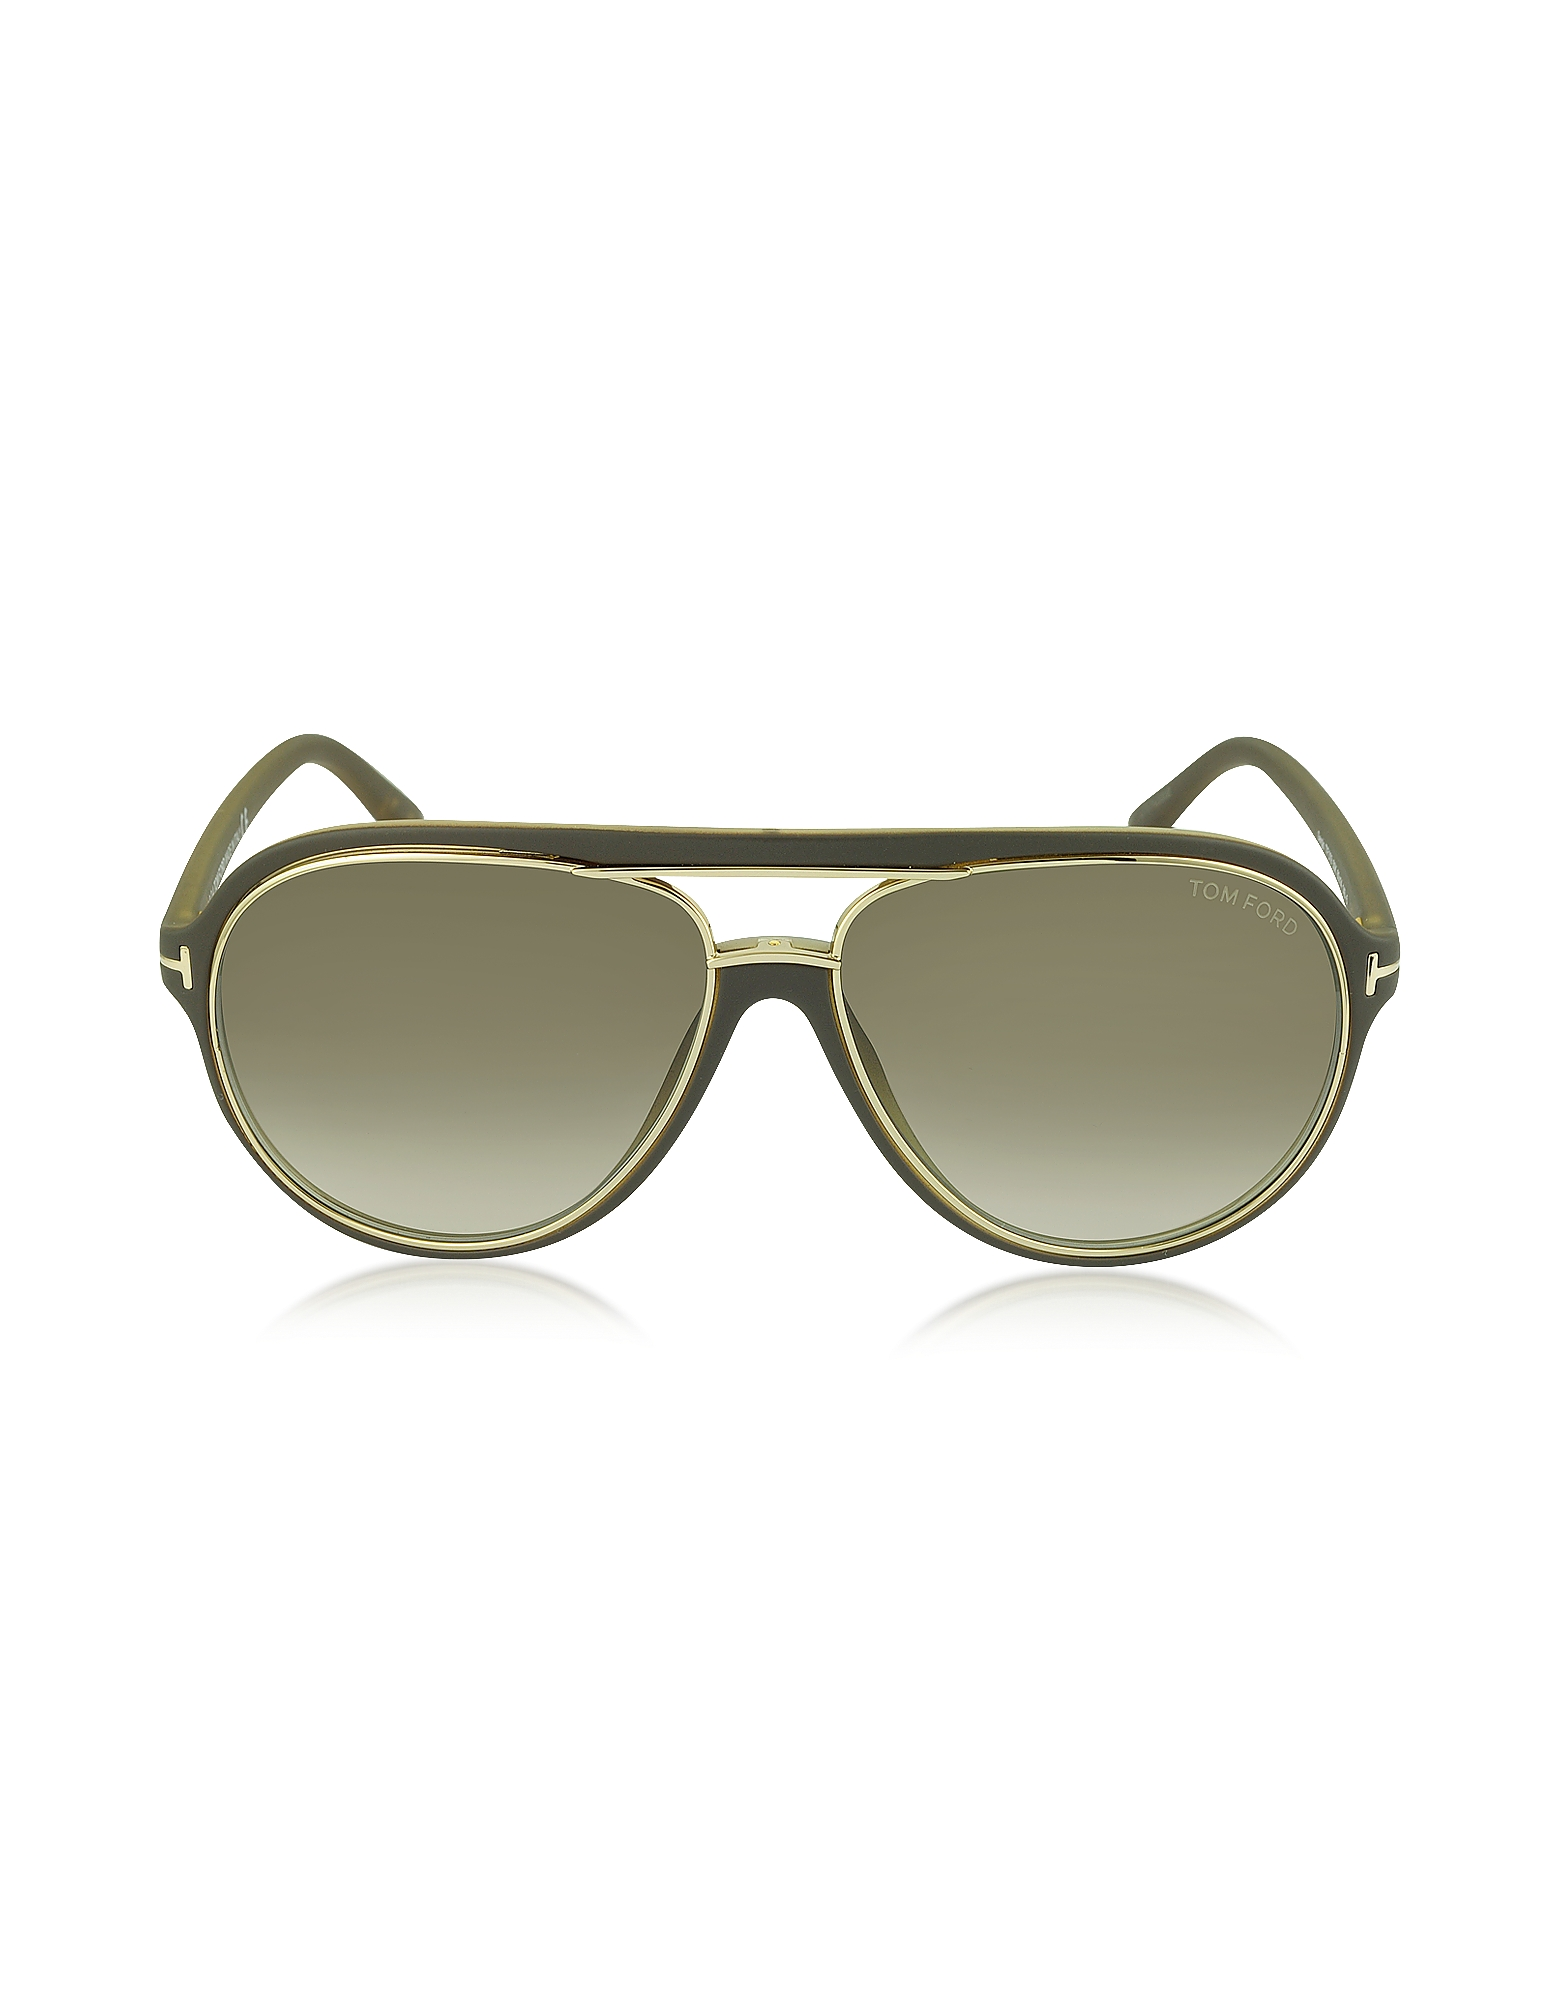 Tom Ford Sunglasses, SERGIO FT0379 Aviator Sunglasses